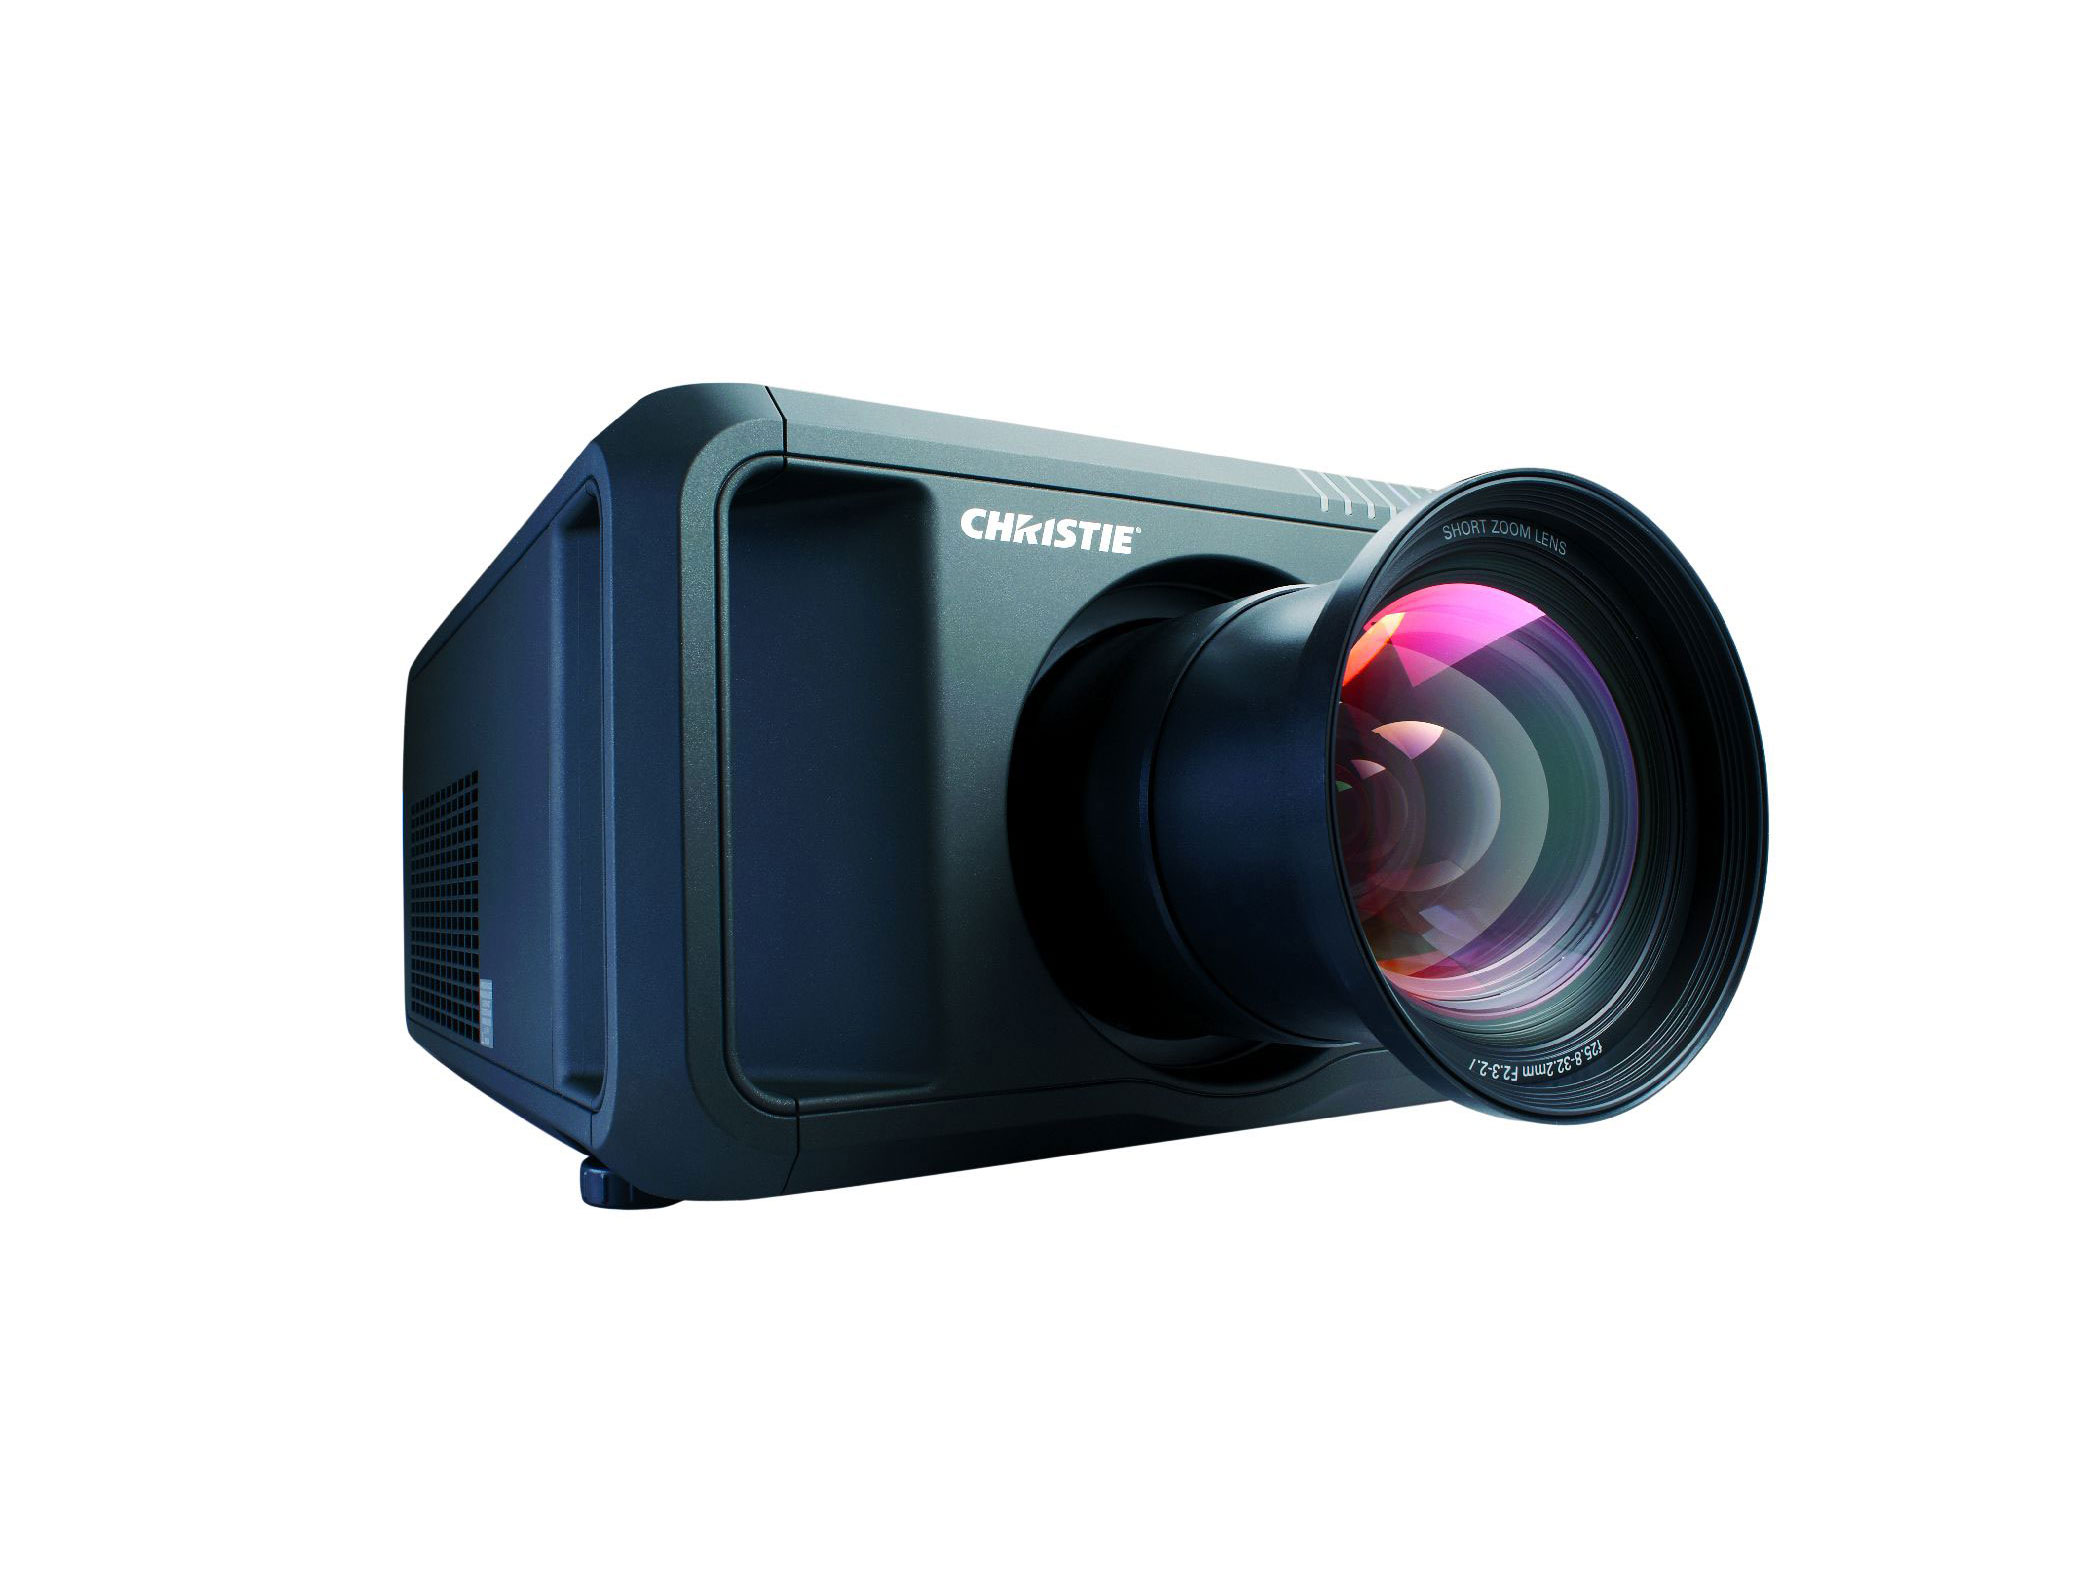 /globalassets/.catalog/products/images/christie-dhd800/gallery/christie-dhd800-digital-projector-image6.jpg